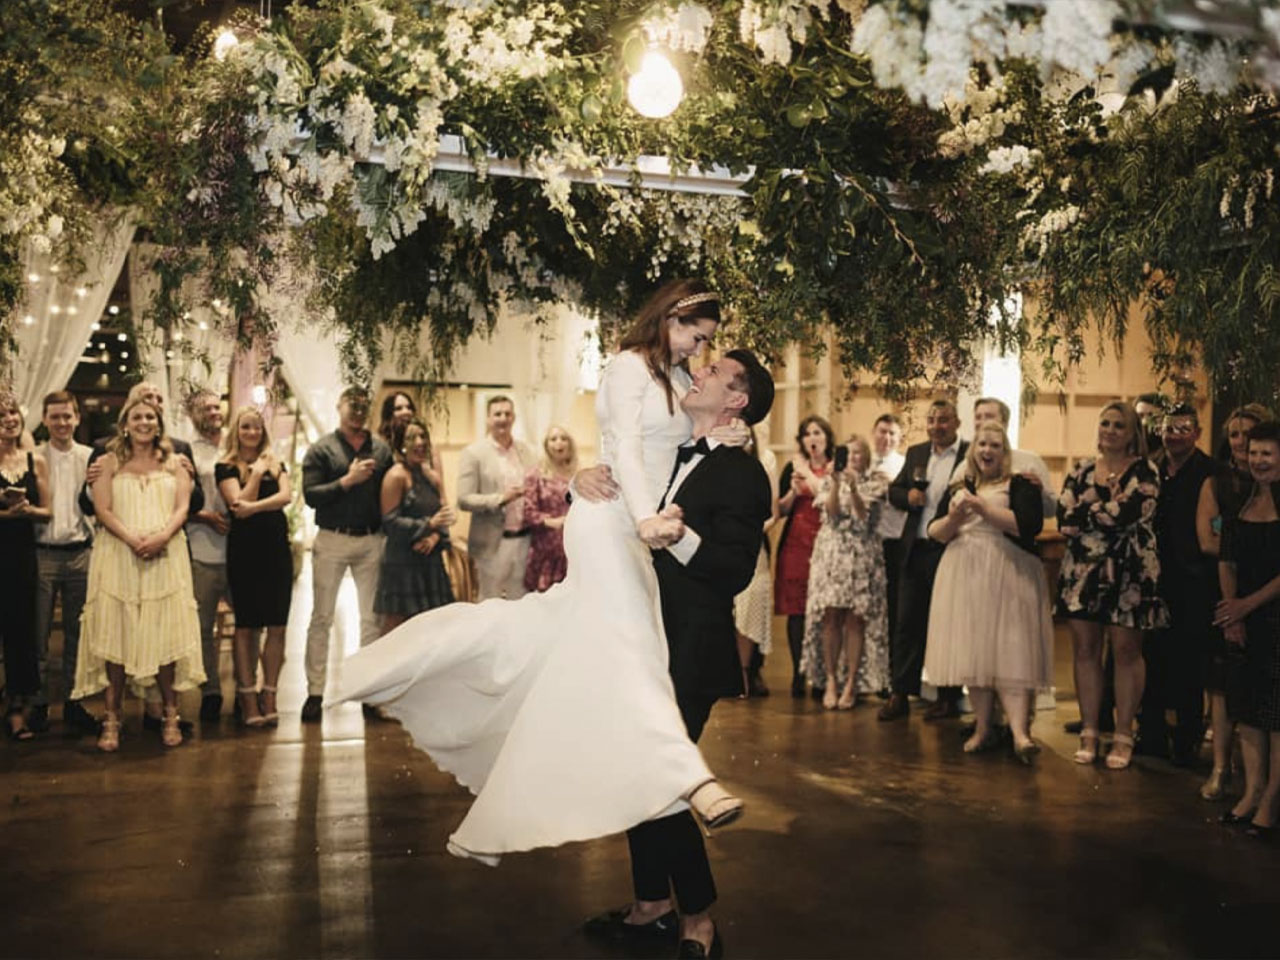 Wedding couple dancing on wooden dance floor in front of crowd